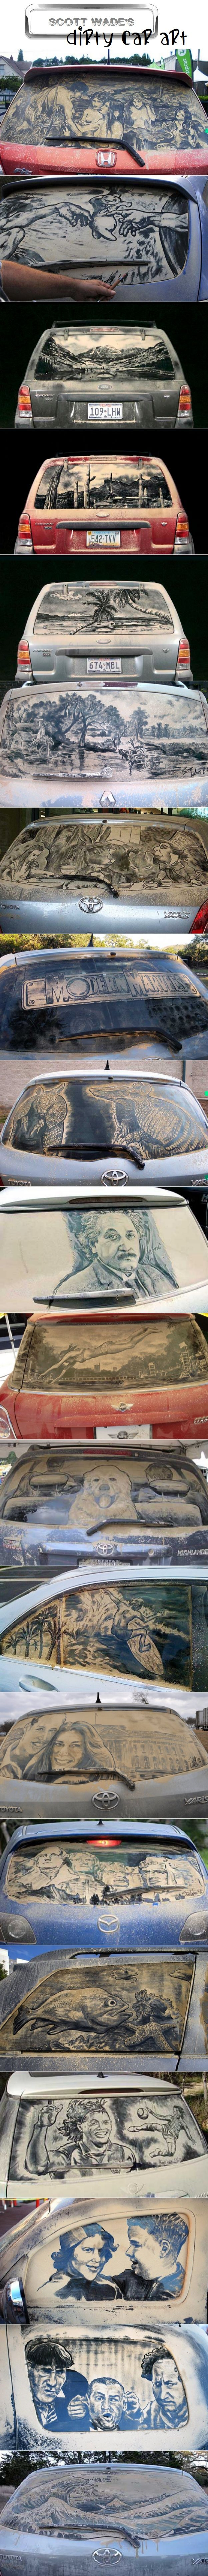 """Check out these really cool """"Dirty Car Art"""" pictures."""